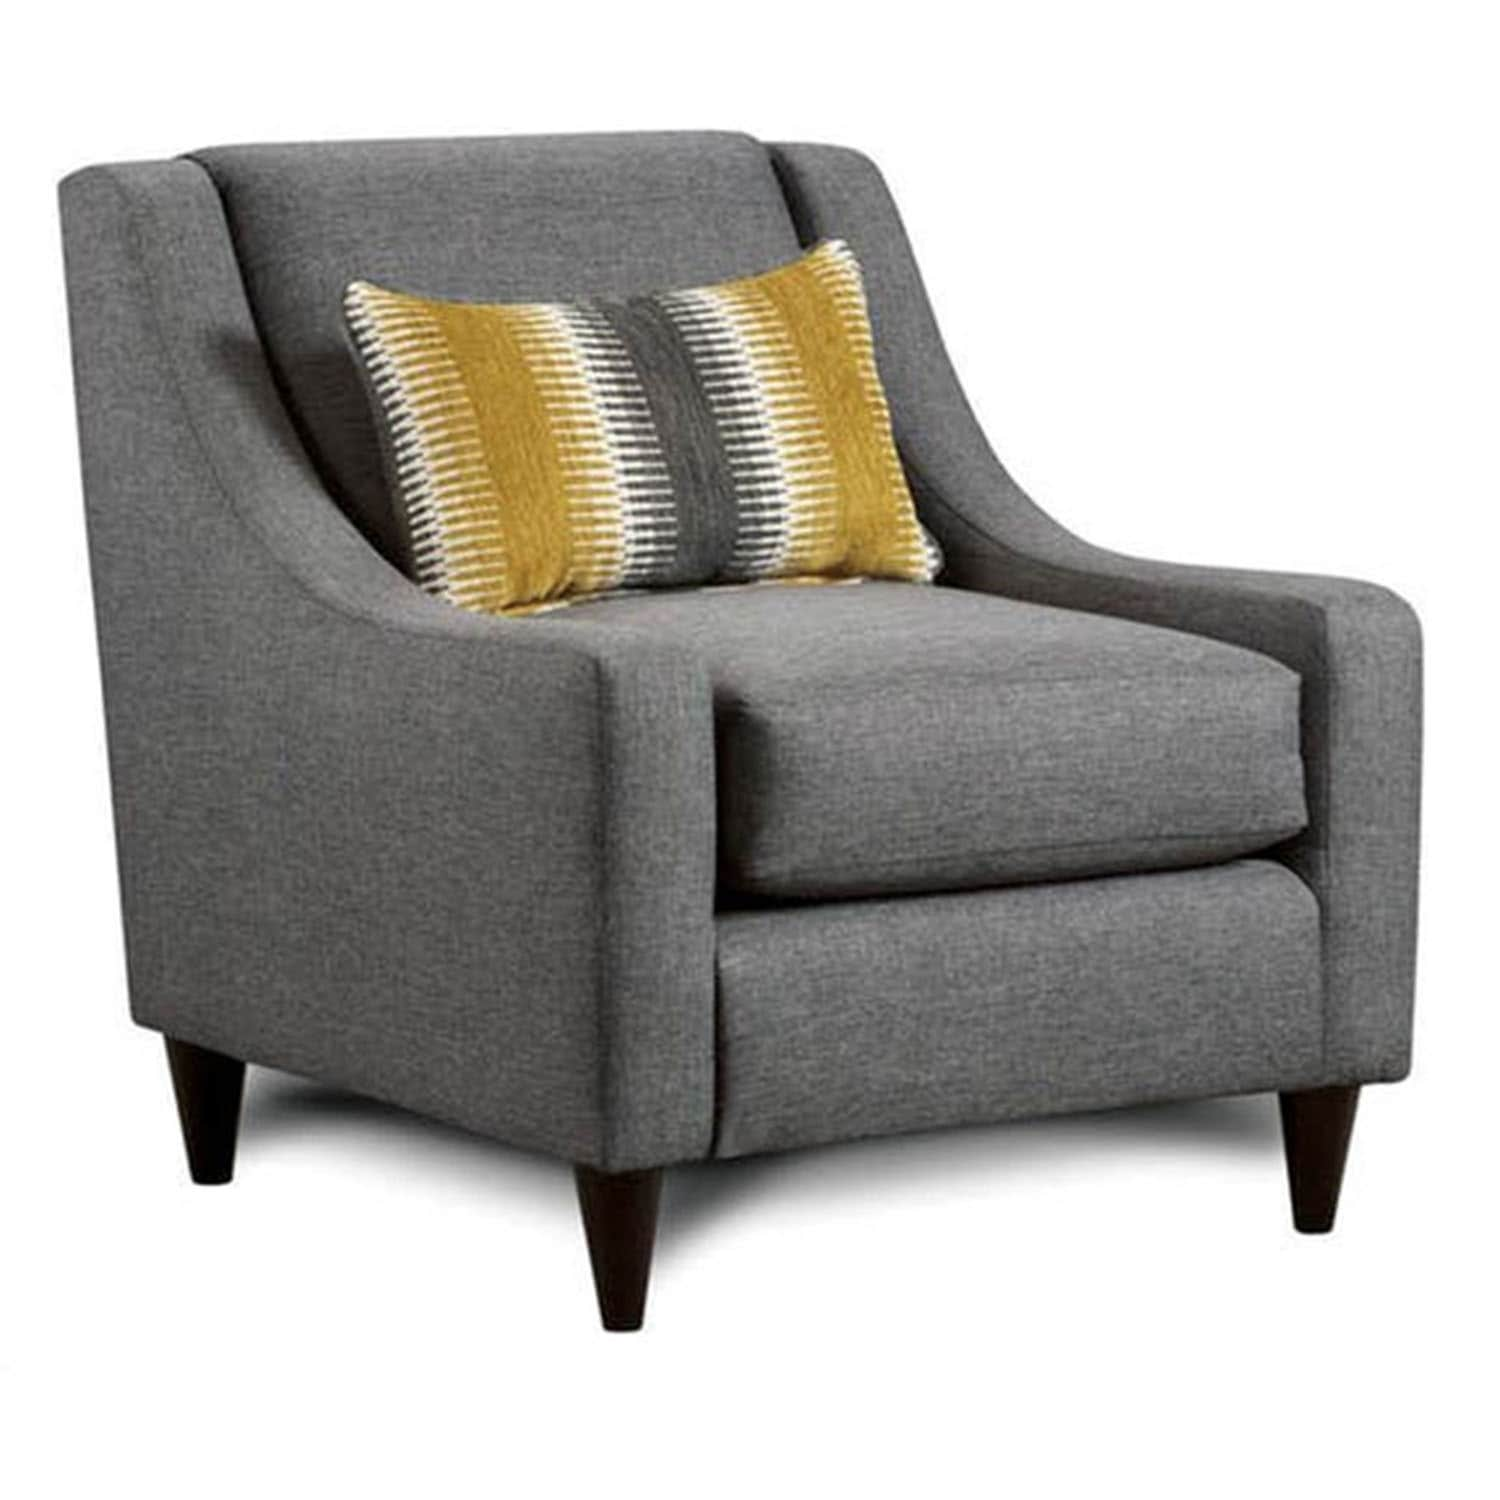 Tristan Transitional Grey Sloped Arm Accent Chair by FOA (Grey)